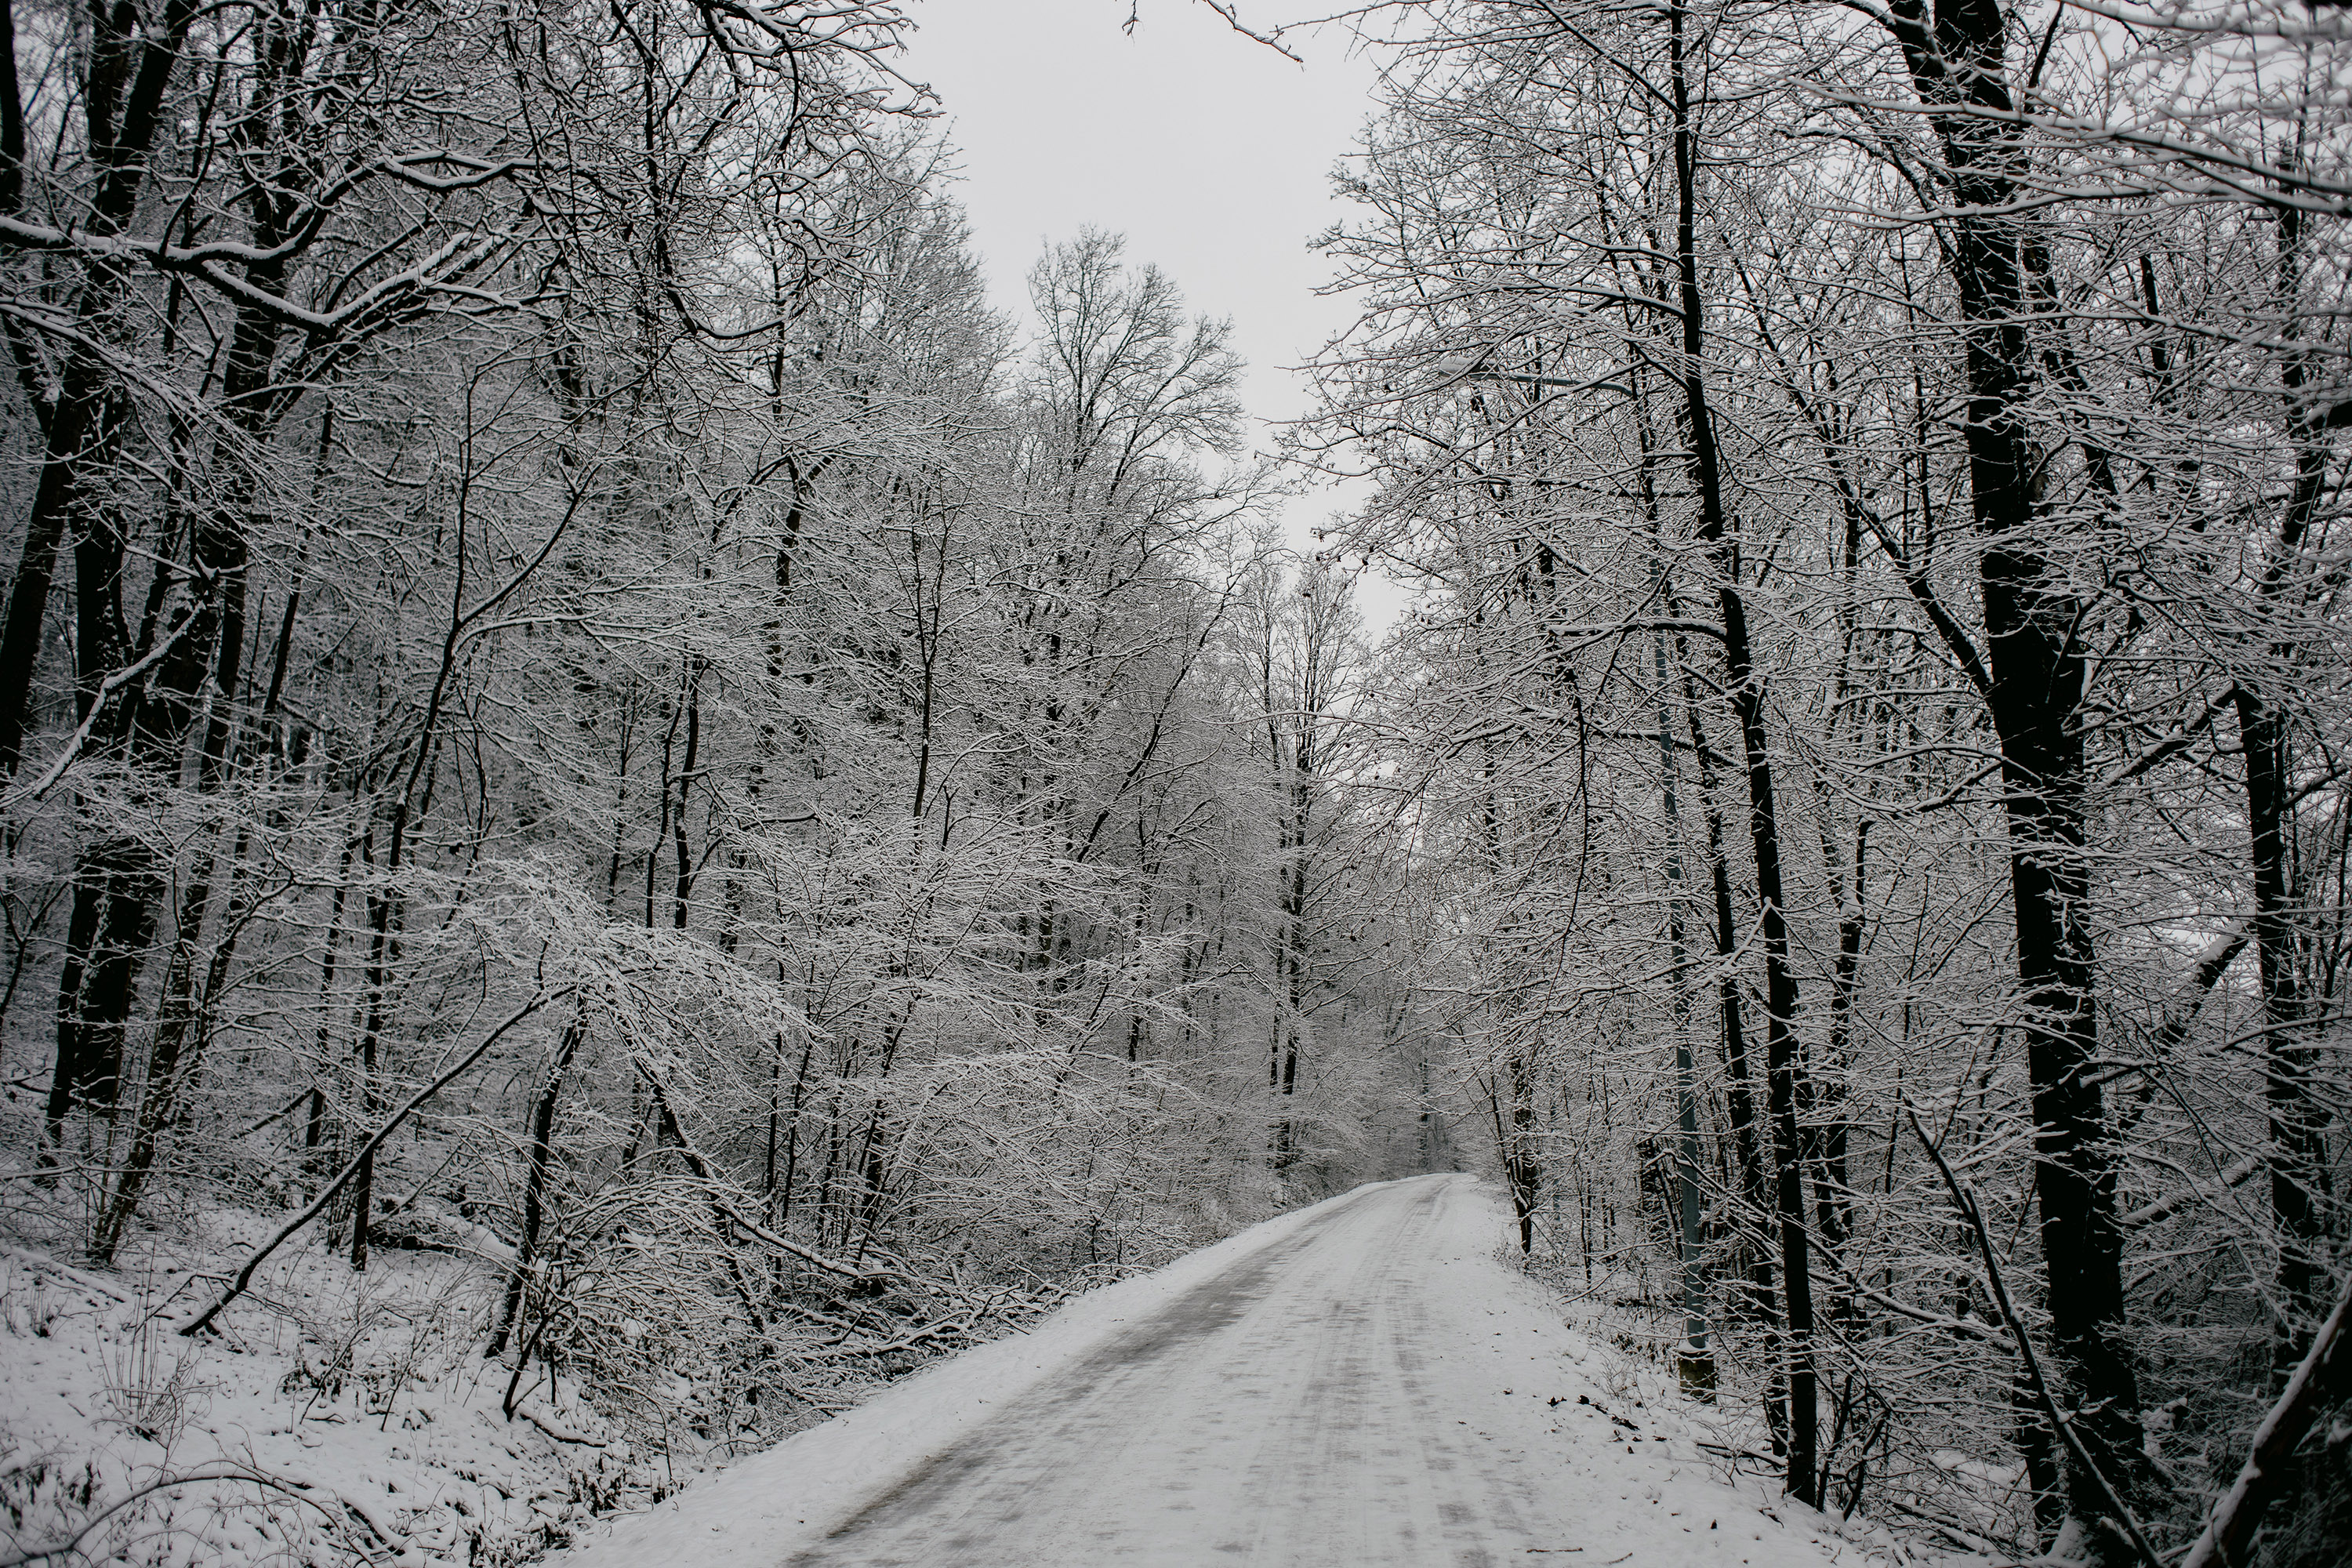 Iced over road in winter